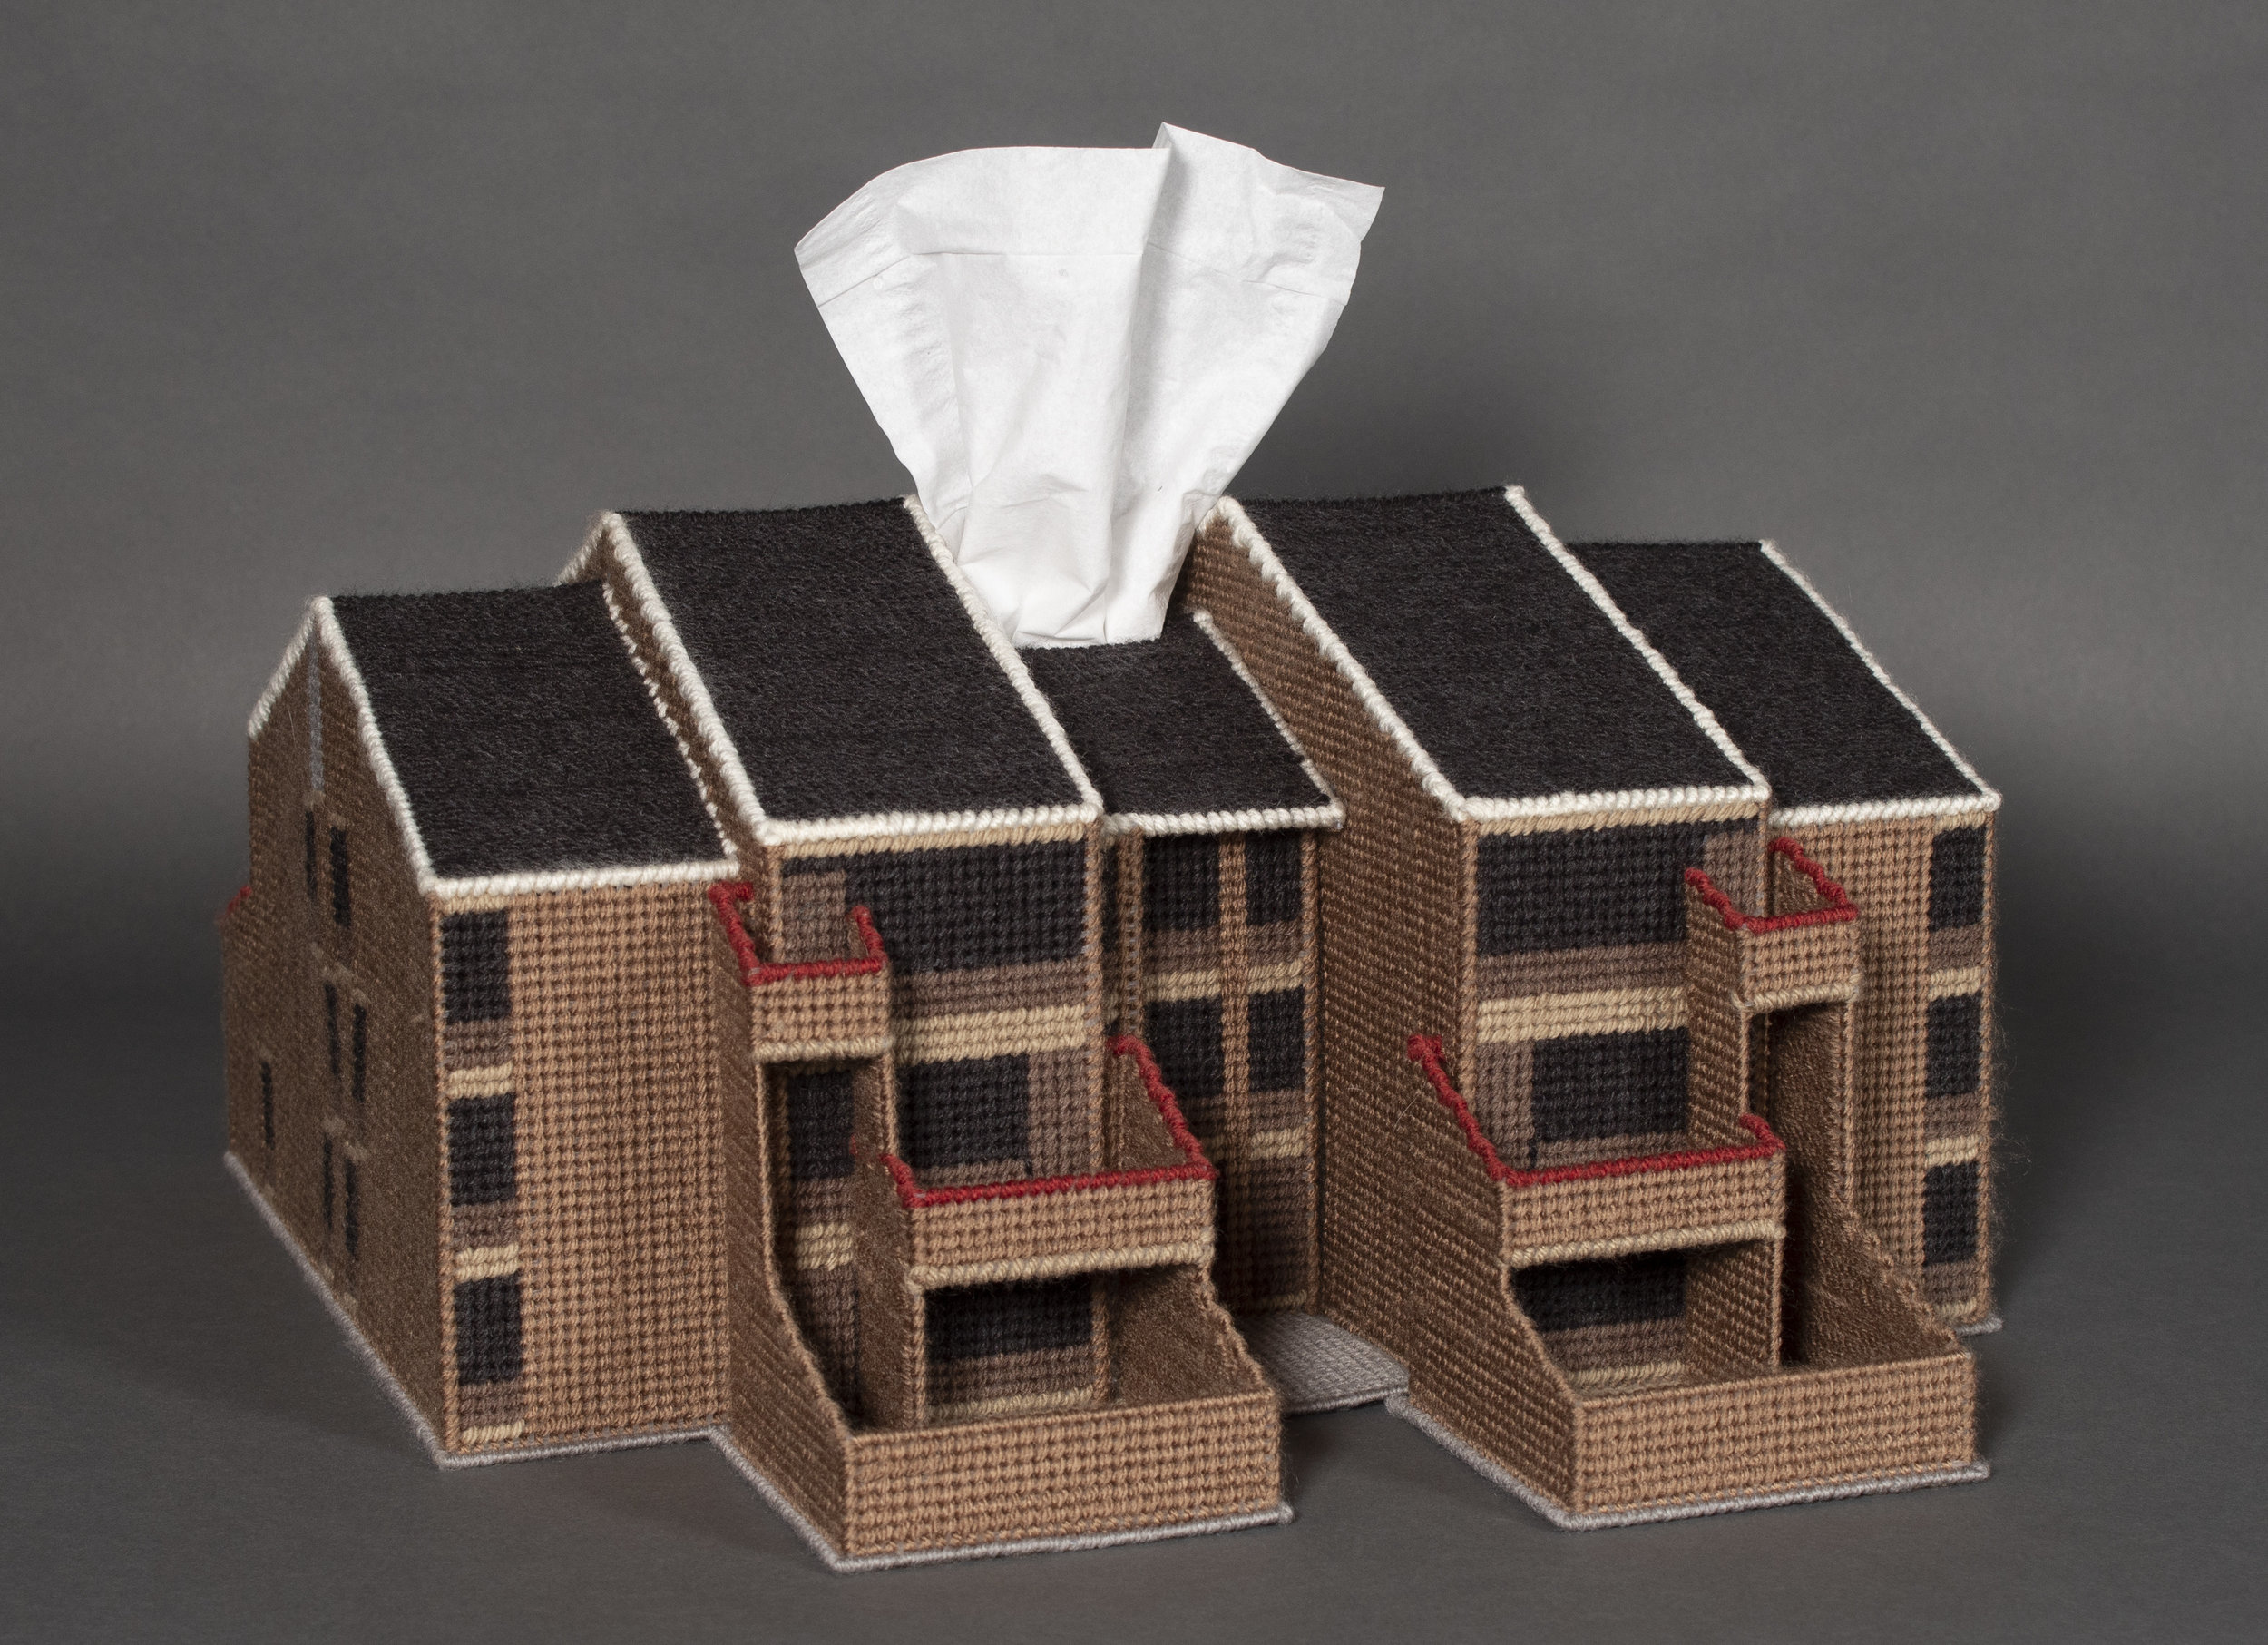 """Disposable: Shoreline Apartment Complex Unit""  Plastic canvas, acrylic yarn, tissue box, 8 X 16.5 X 21 inches, 2016.    An artwork by Buffalo-born & based, fiber artist Kurt Treeby. This is his depiction of Paul Rudolph's    Shoreline Apartments    in Buffalo. It is part of a set of works by Treeby, the ""Disposable"" series, involving—in the artists recounting—""thousands of precise stitches, all sewn by hand…""    Photo:    www.kurttreeby.com"